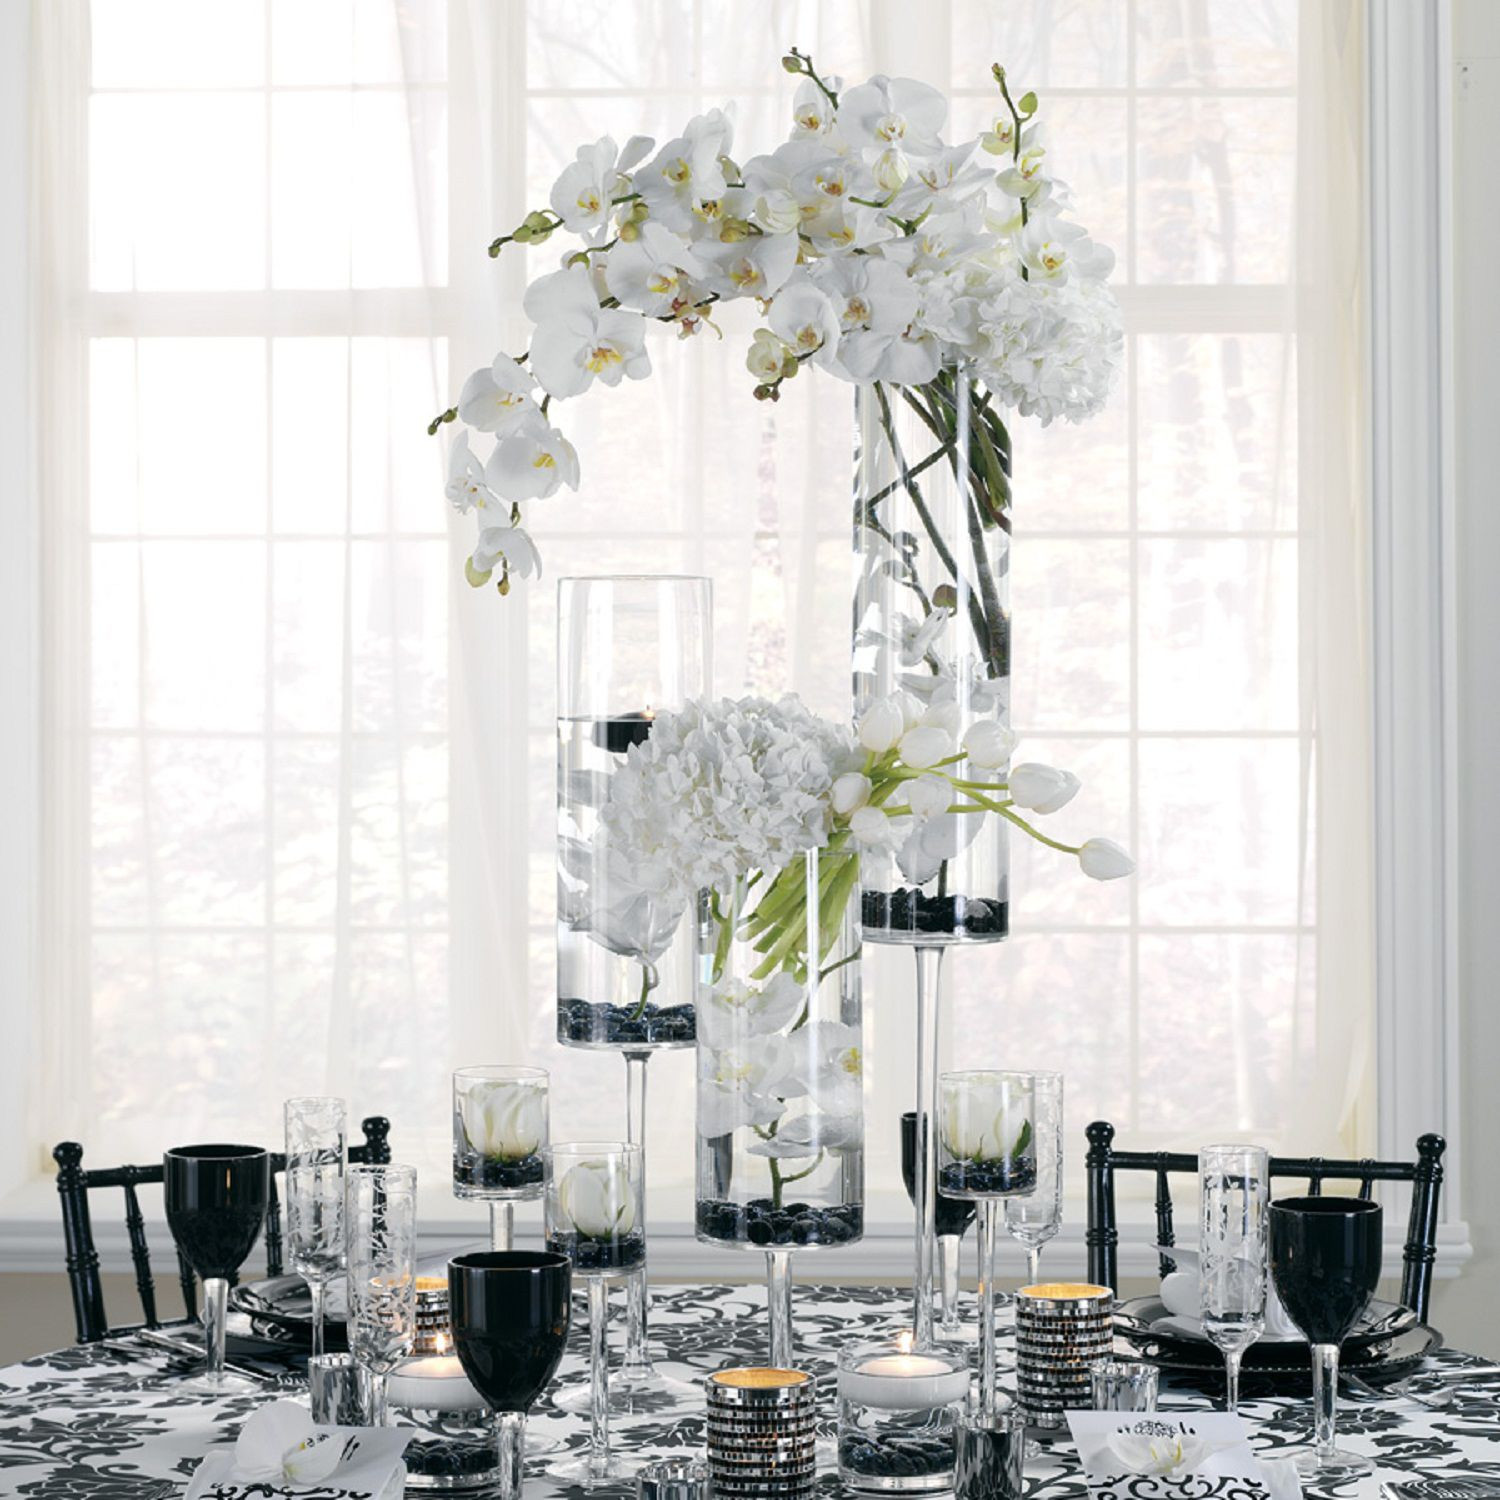 tall silver vases for wedding centerpieces of tall vase white flower arrangements flowers healthy throughout prepossessing long vase flower arrangement designs home accessories luxury ideas of large vases for weddings best home design ideas